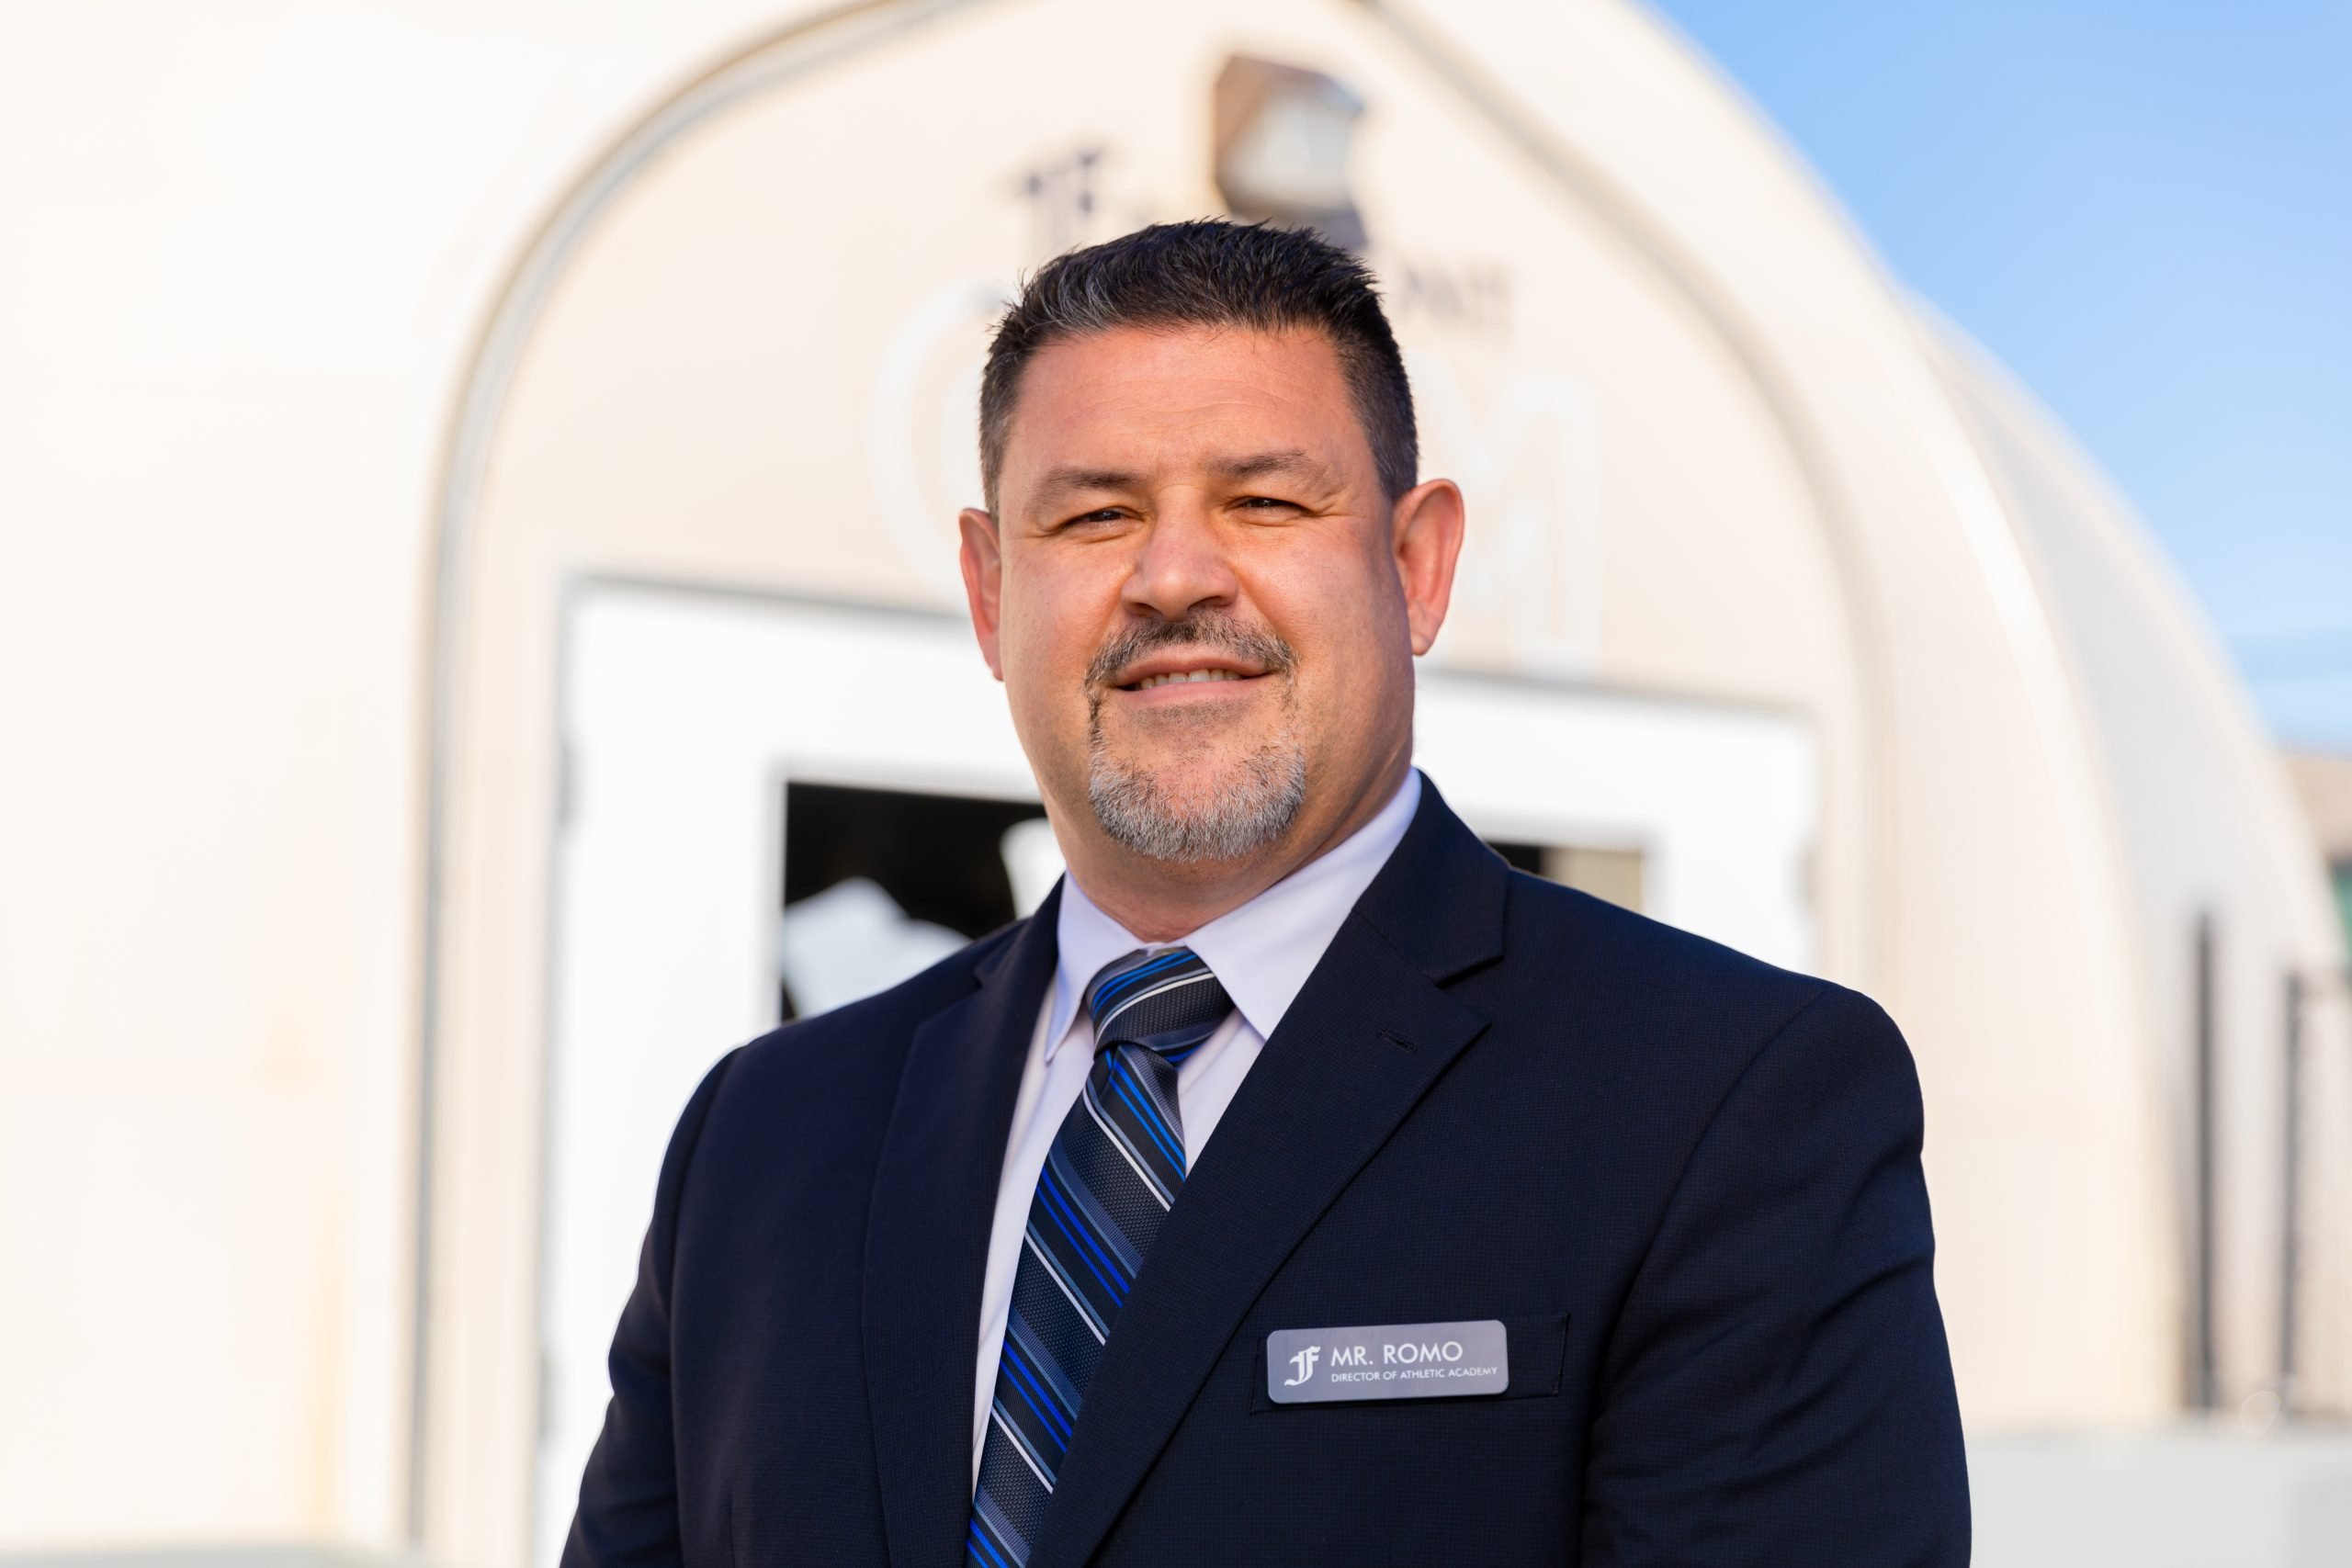 Fairmont Schools - Introducing…Fairmont Athletic Academy: An Interview With Coach Romo